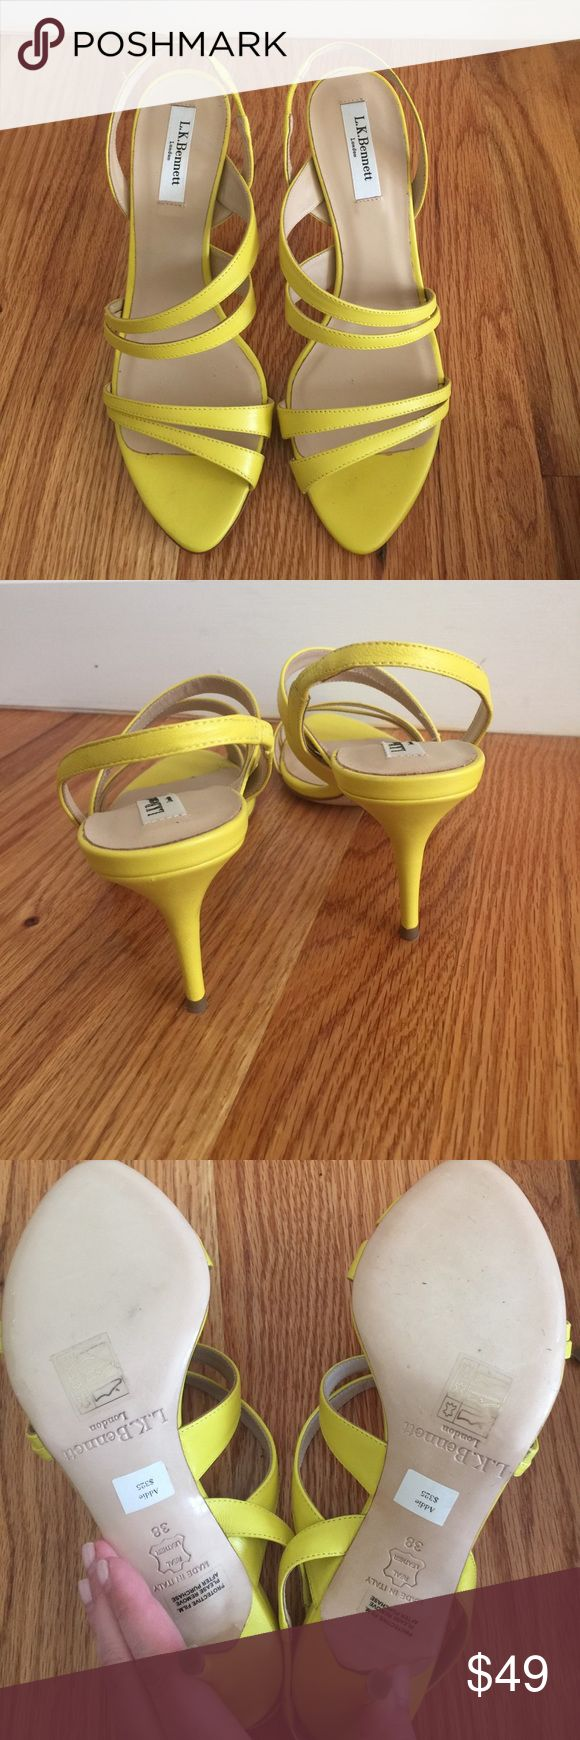 "New LK Bennett ""Addie"" strappy heels! Sz 38 & 40 Beautiful bright sunny yellow strappy leather Addie sandal heels by LK Bennett. Never worn! Size 40 best correlates with a size 9 and size 38 best correlates with a 7 so listing as such. Please know your Euro sizing ❤ Originally $325. LK Bennett Shoes Heels"